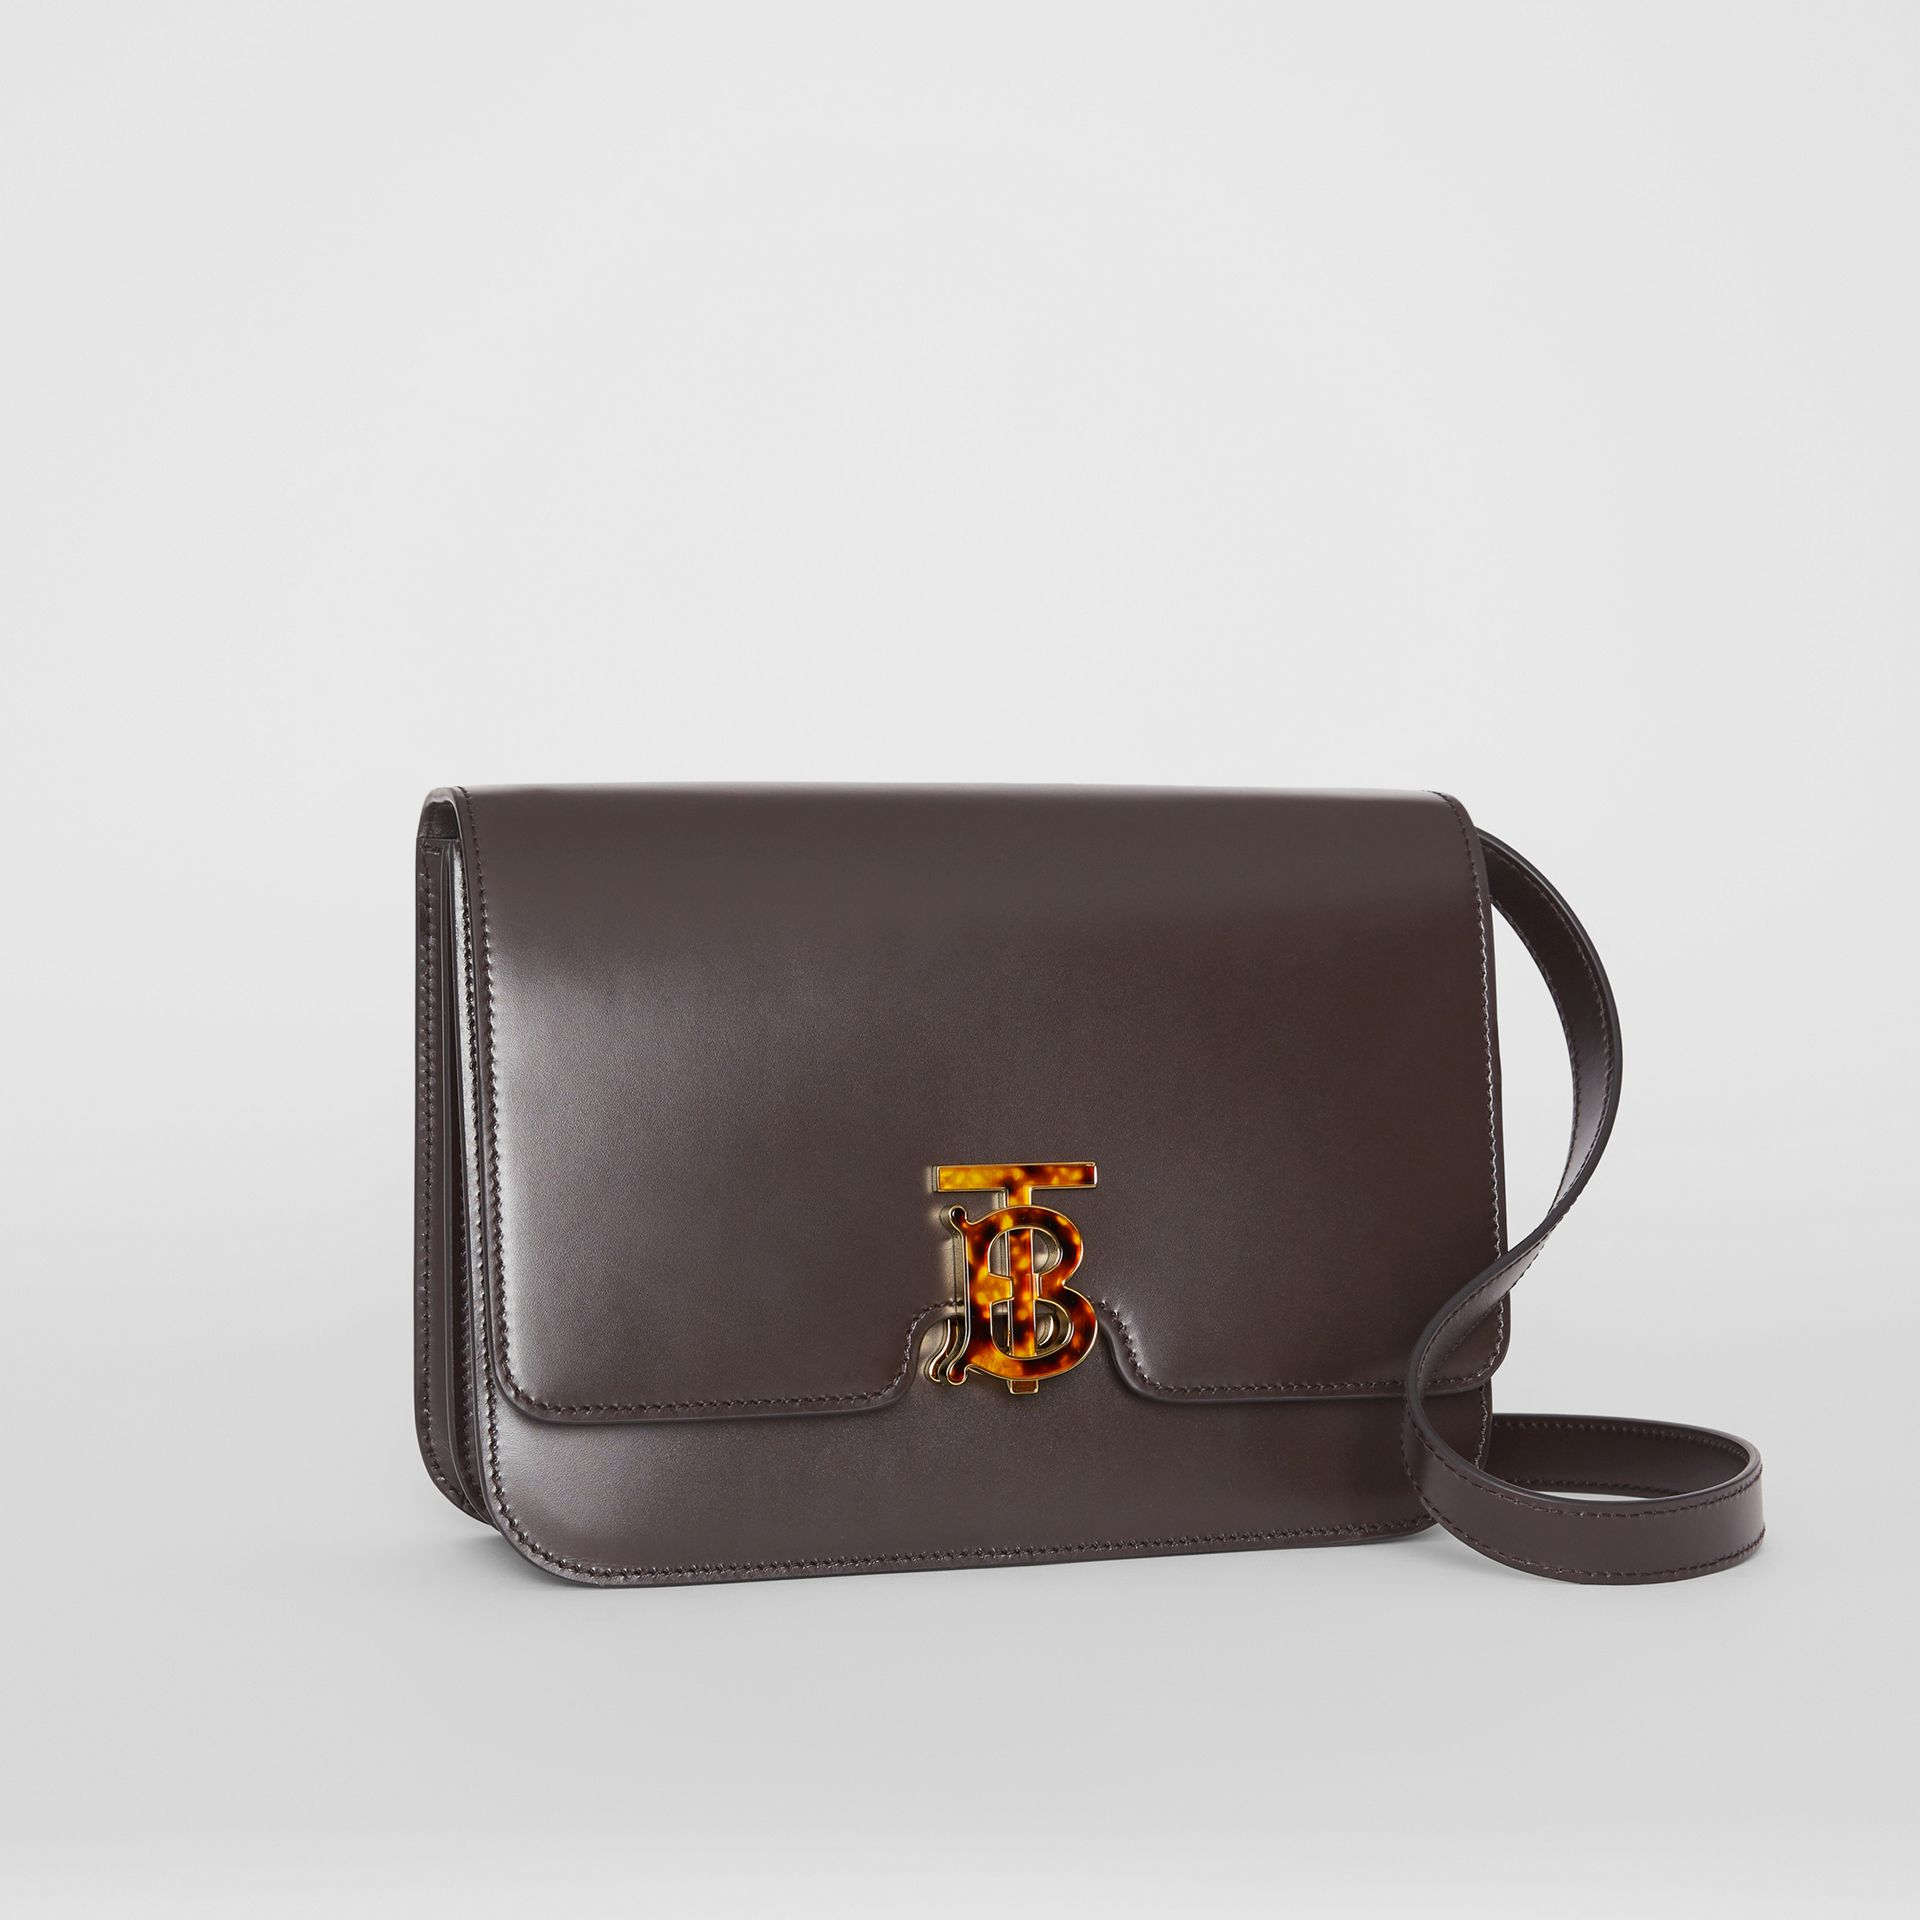 Medium Leather TB Bag in Coffee - Women | Burberry United States - gallery image 6